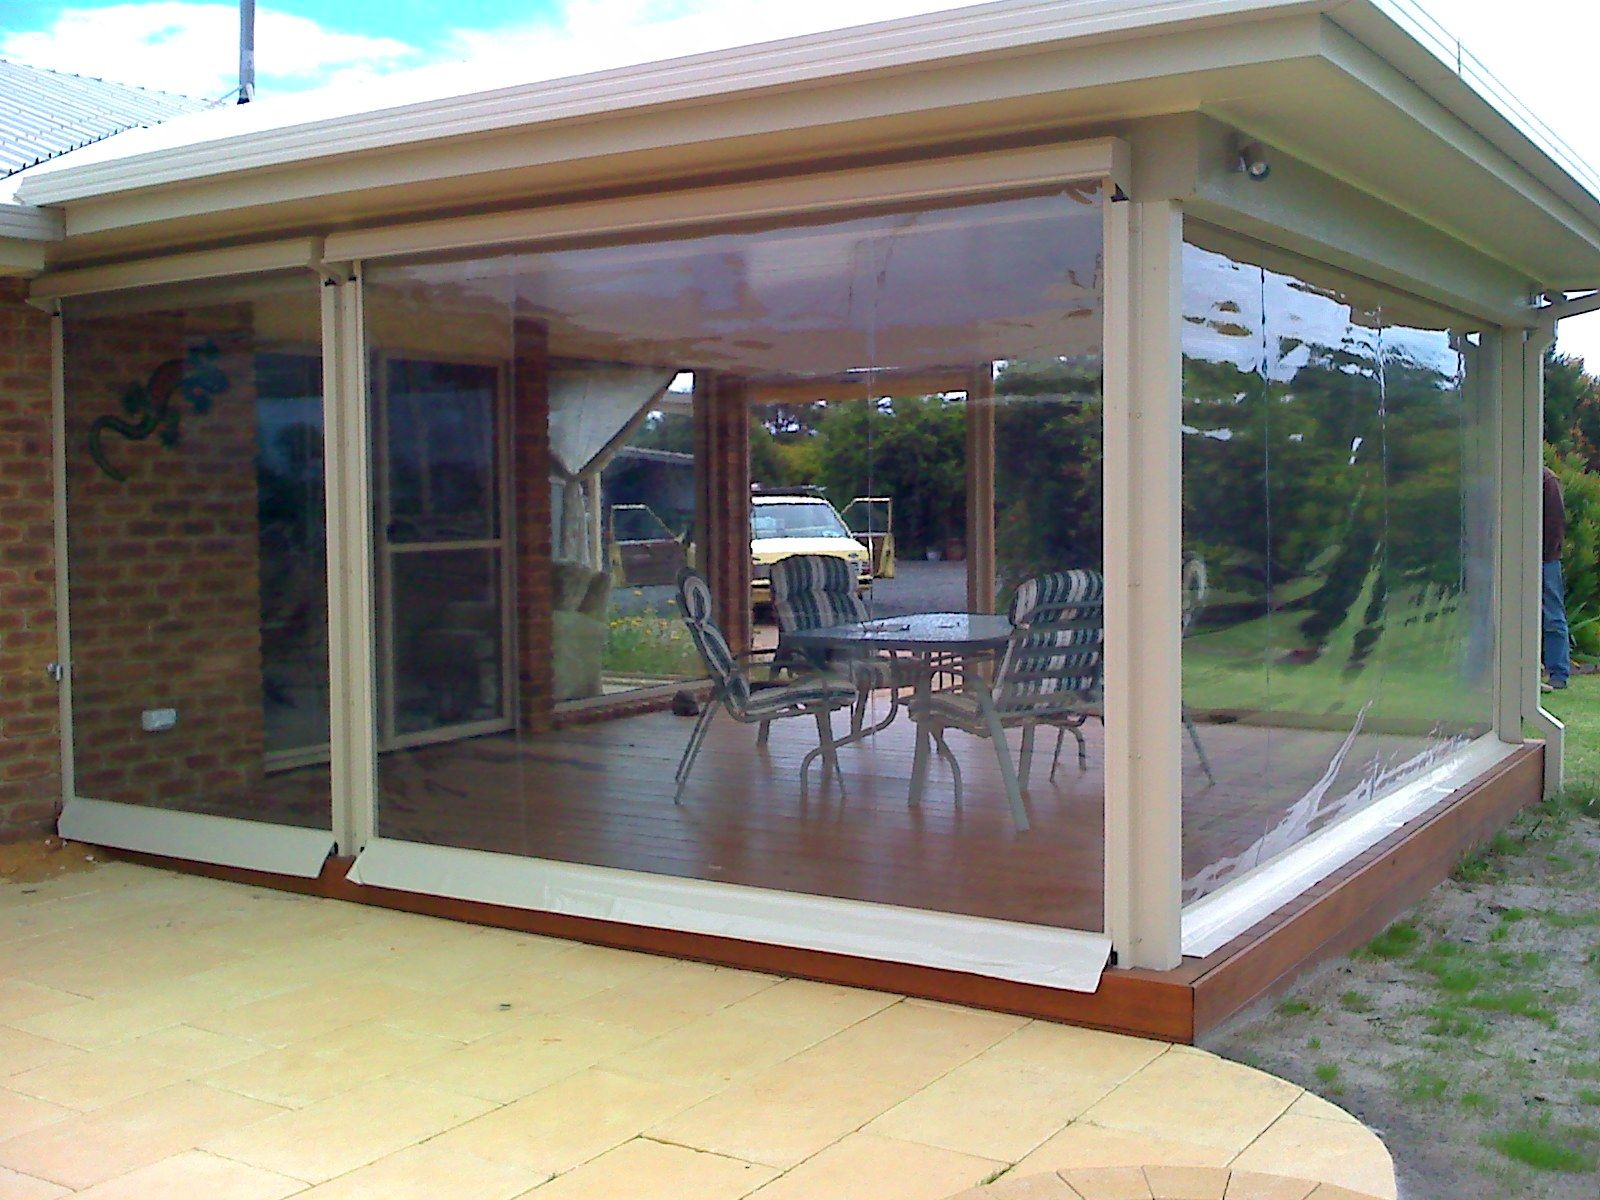 Artistic Outdoor Pergola Blinds Pergola Blinds Cafe Blinds within sizing 1600 X 1200